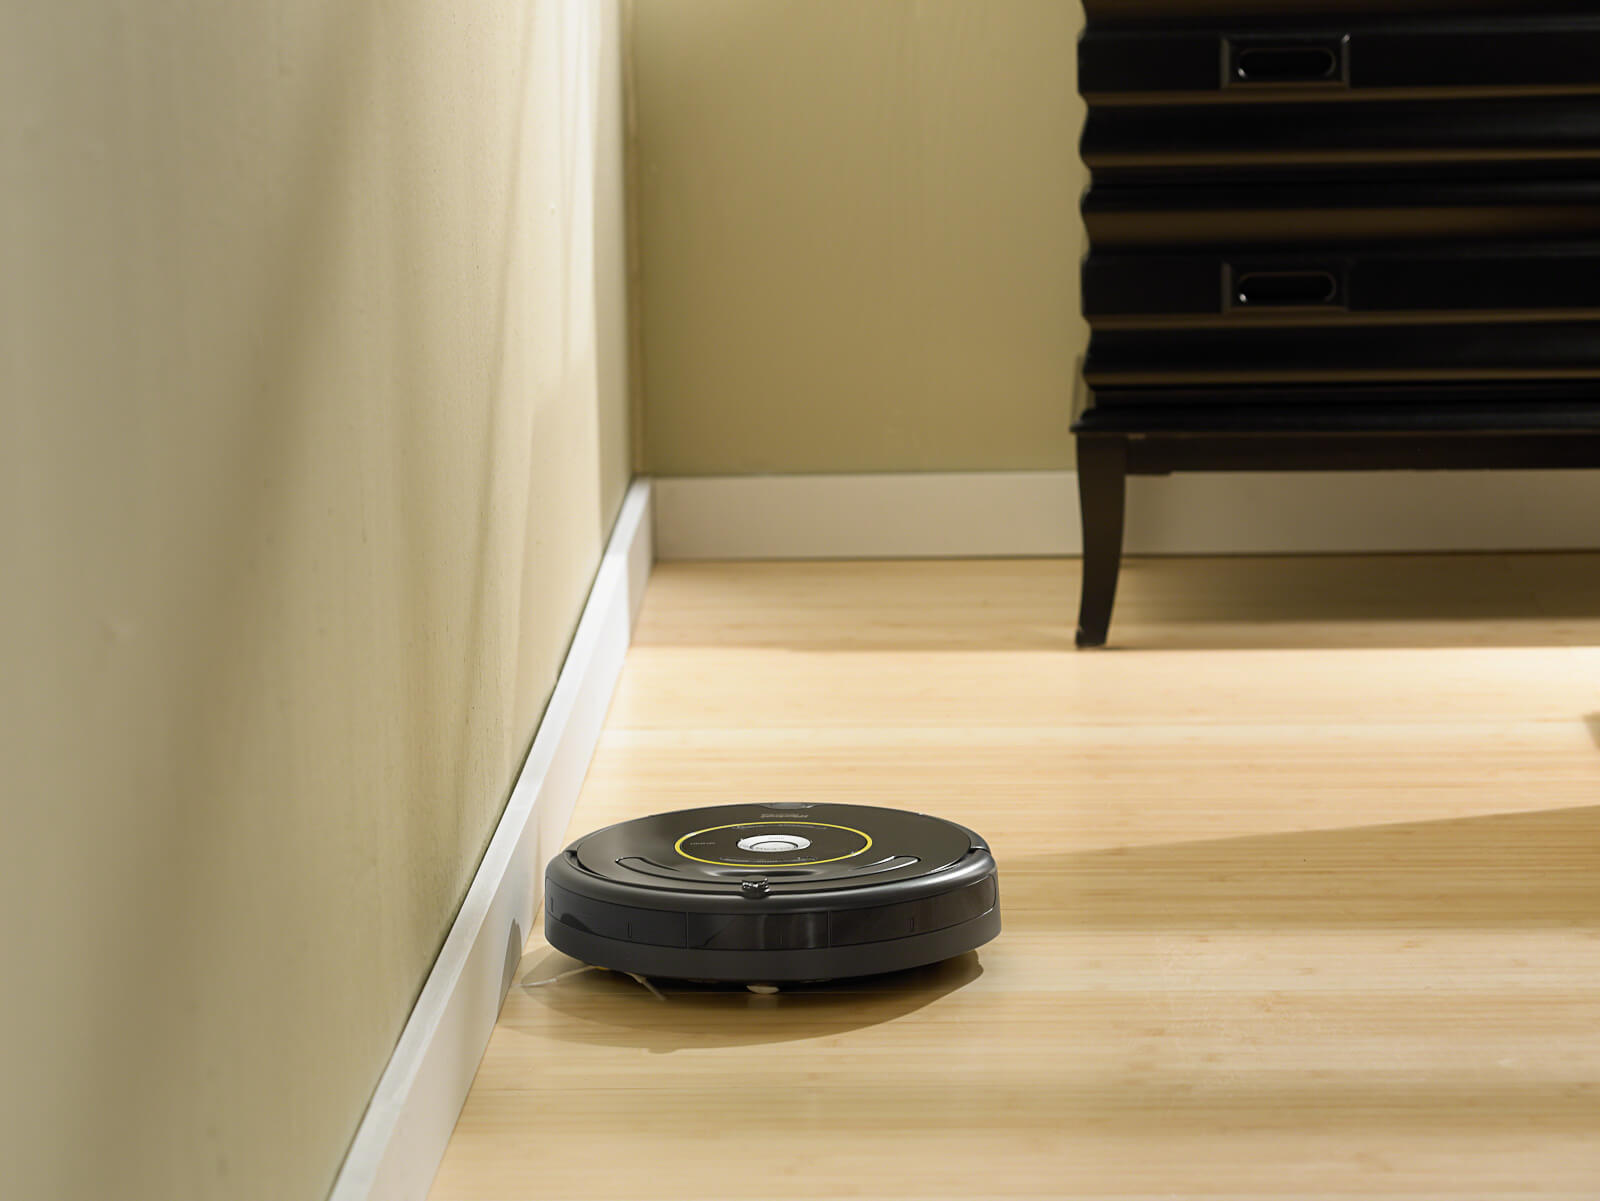 Test iRobot roomba 650